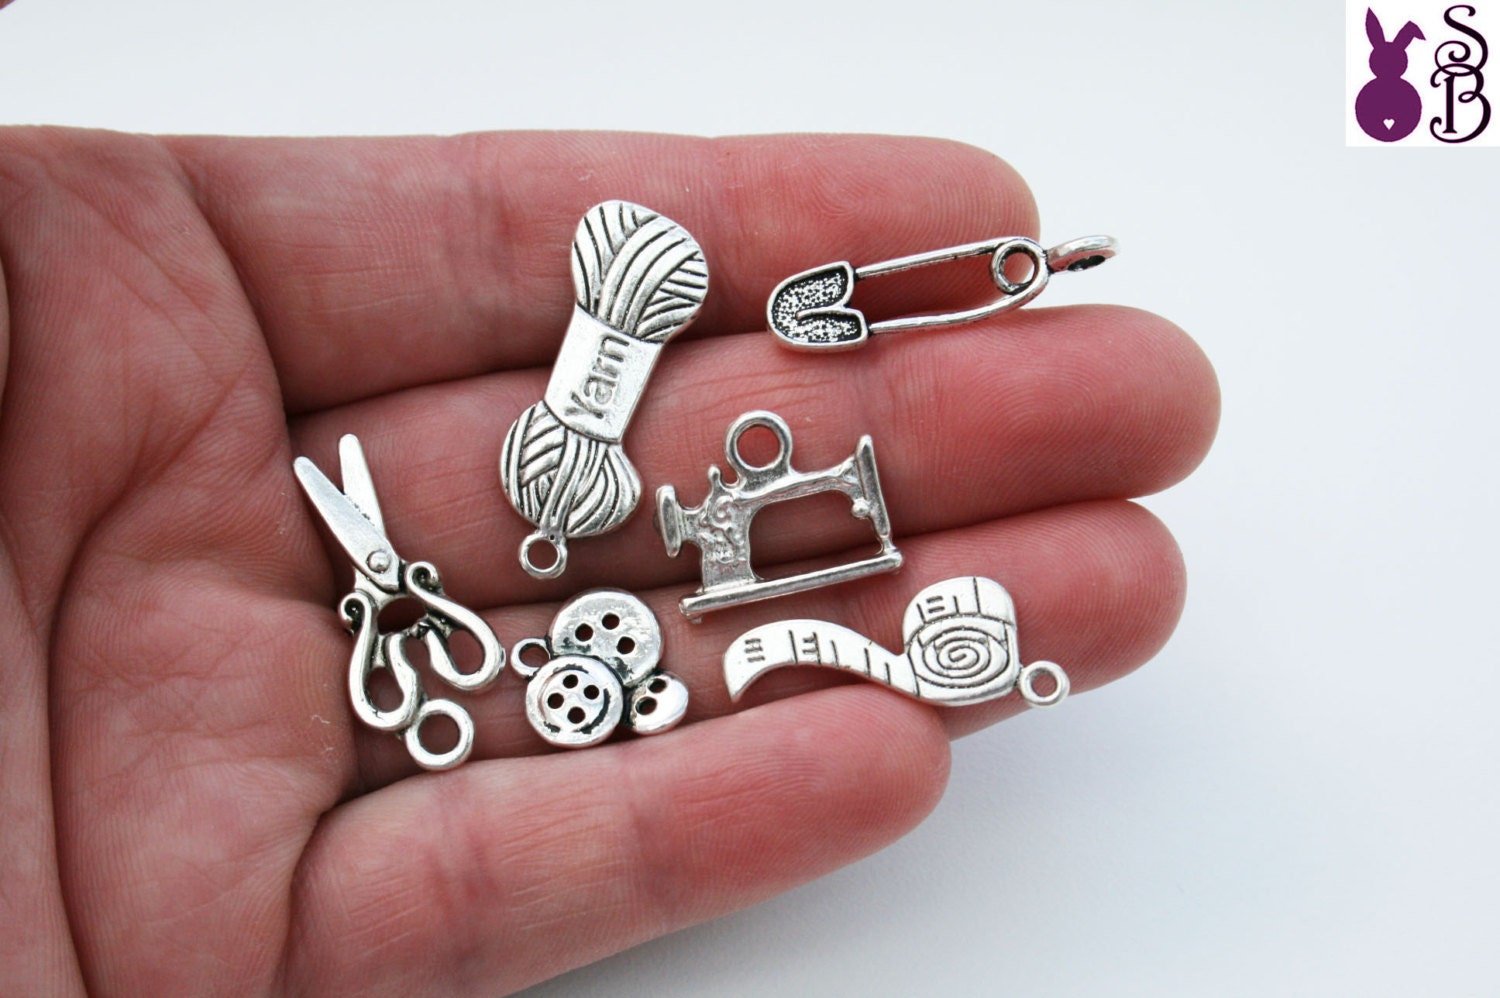 1 Pack Sewing  Knitting Charms (6 in a Pack)  Tibetan Style Antique Silver  FREE SHIPPING